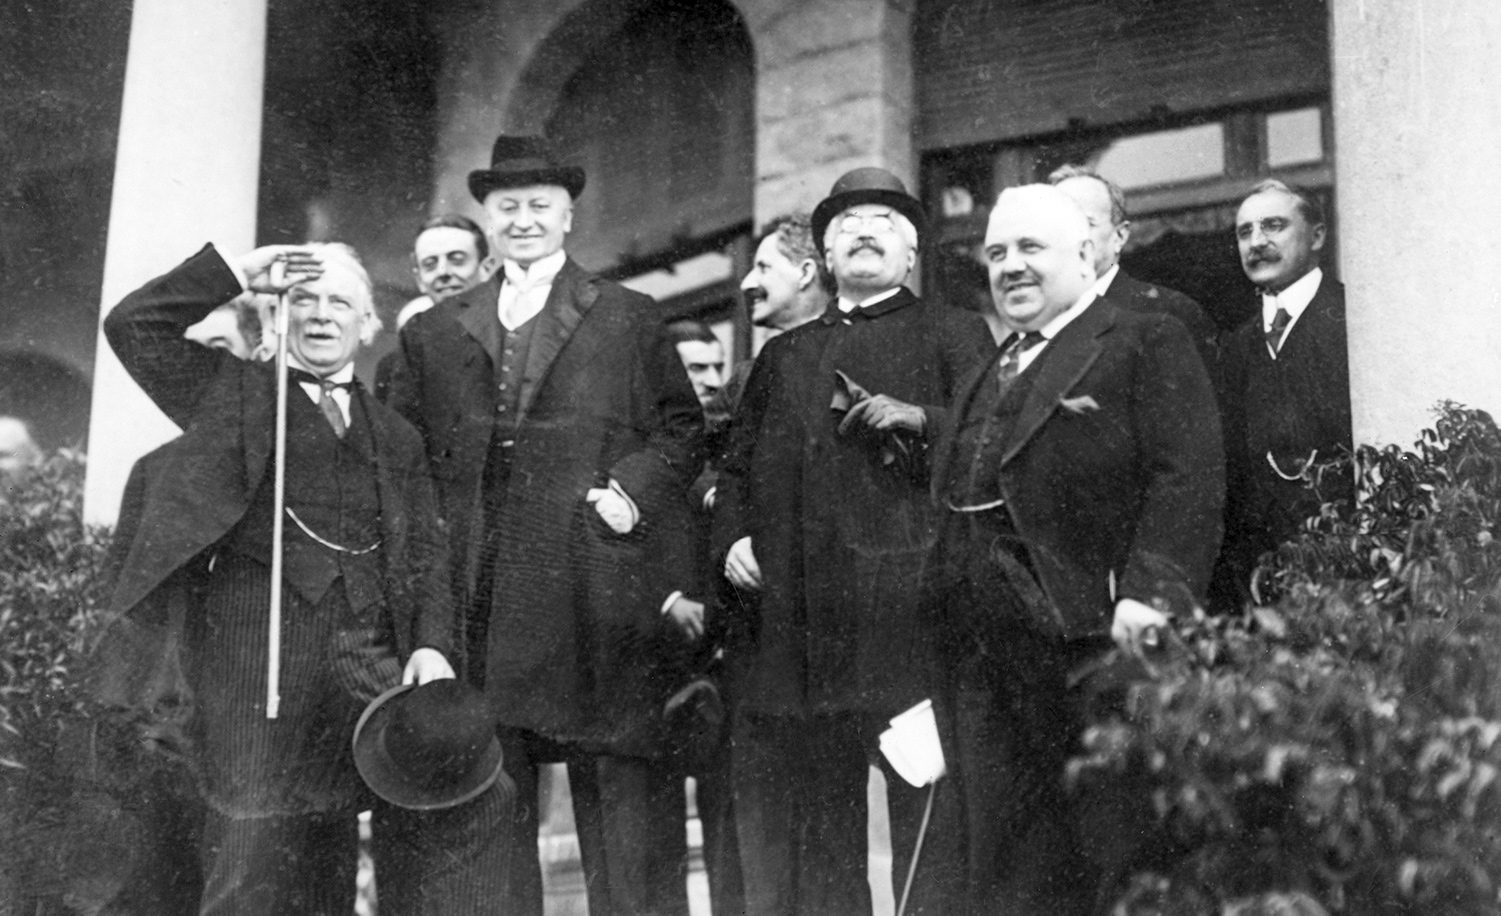 Prime Minister Lloyd George and Earl Curzon of the United Kingdom, Prime Minister Alexander Millerand of France, and Prime Minister Francesco Nitti of Italy at the League of Nations Peace Treaty Conference in San Remo on May 13, 1920. Getty.